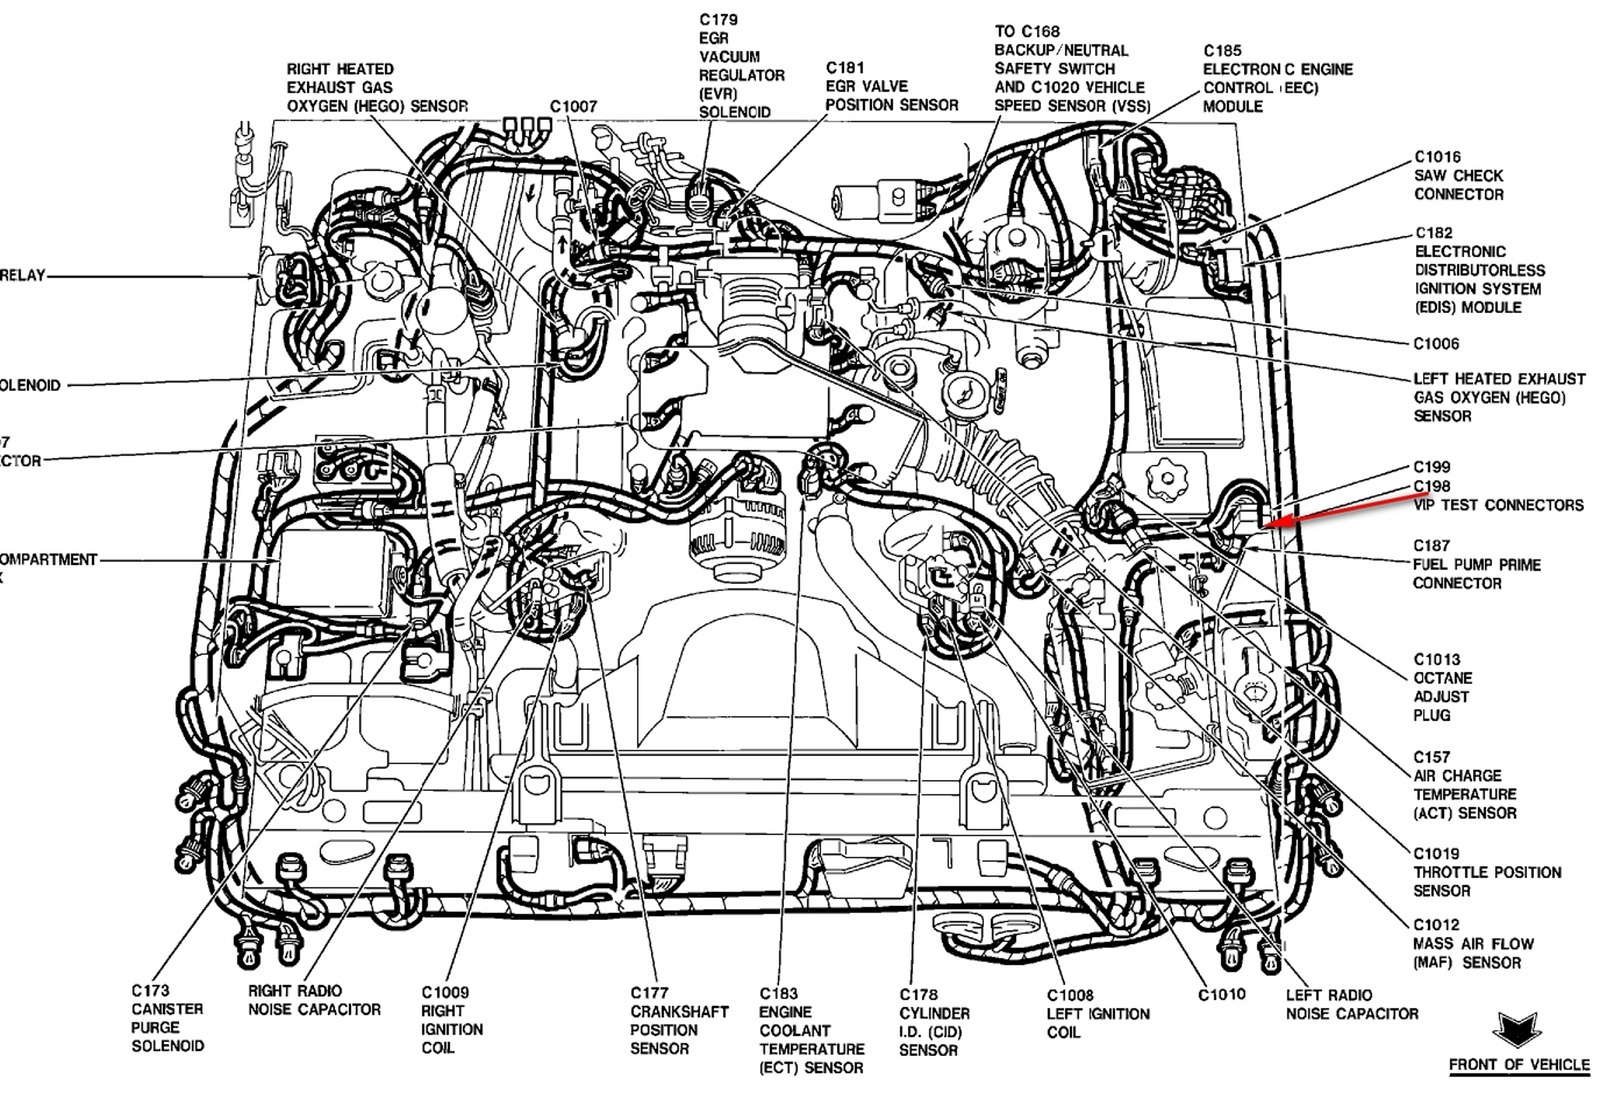 Discussion T16270 ds545905 on bmw 528i motor diagram